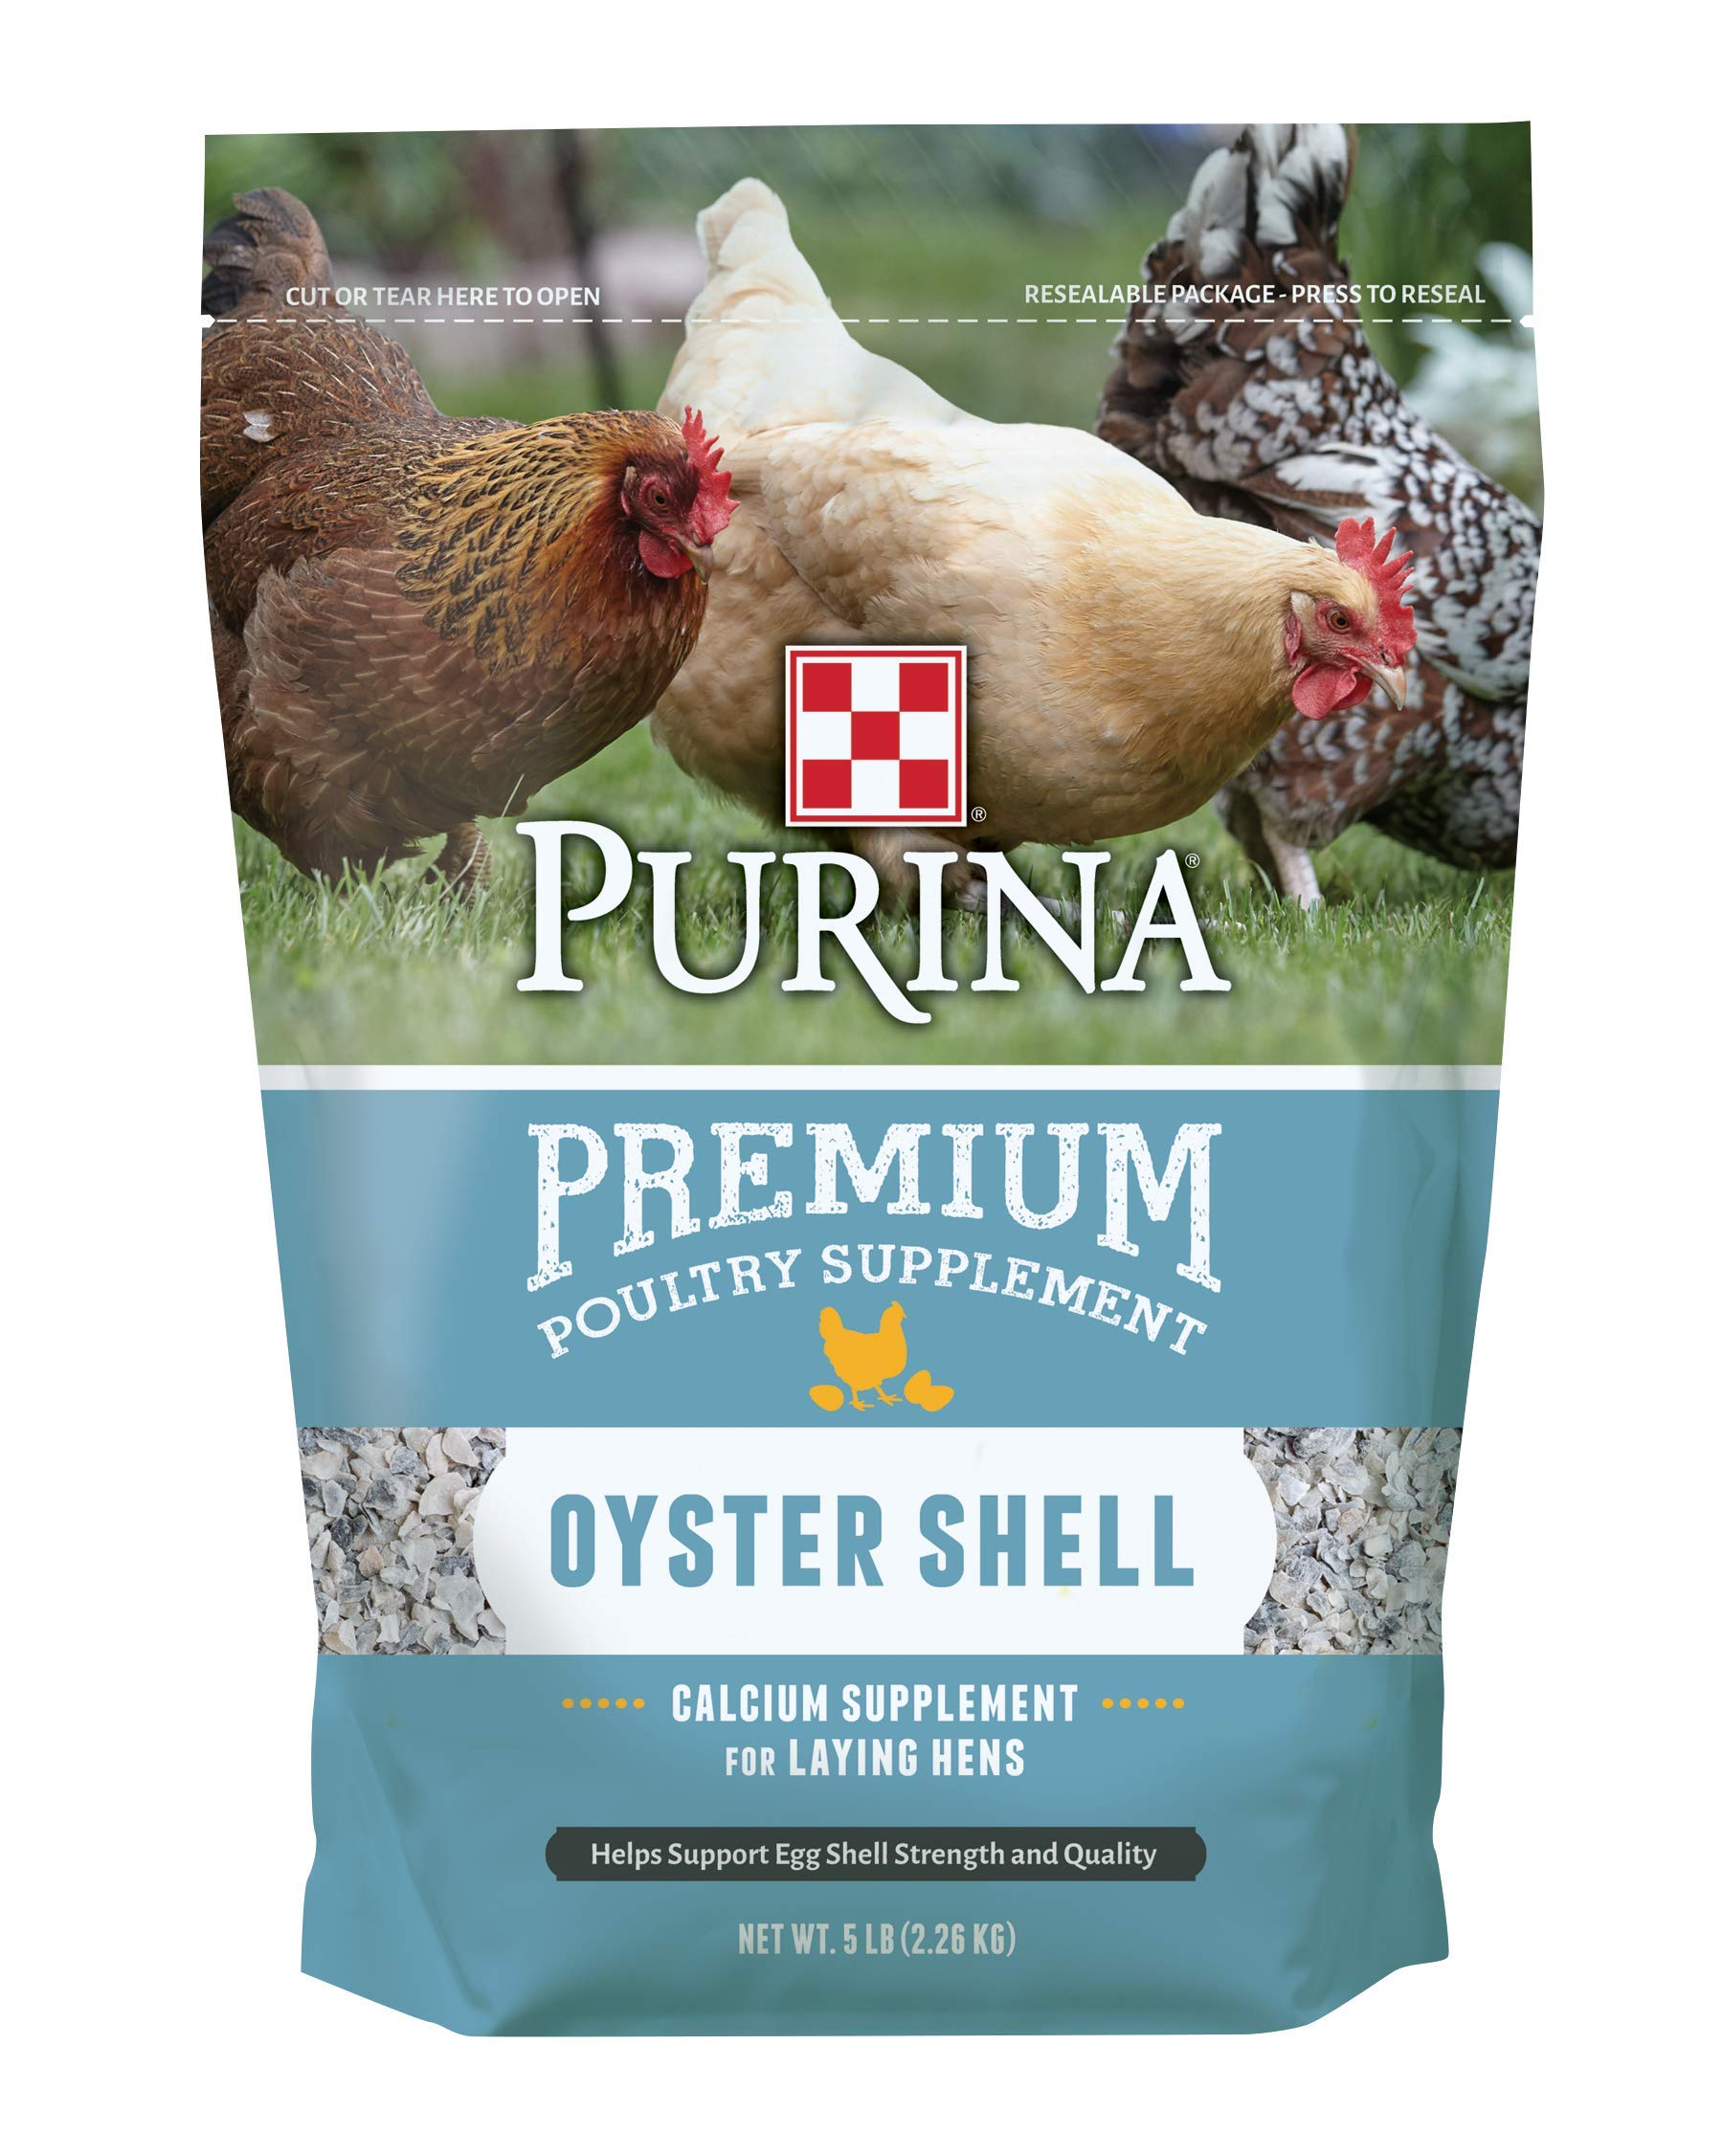 Purina Oyster Shell Poultry Supplement, 5 lb bag by Purina